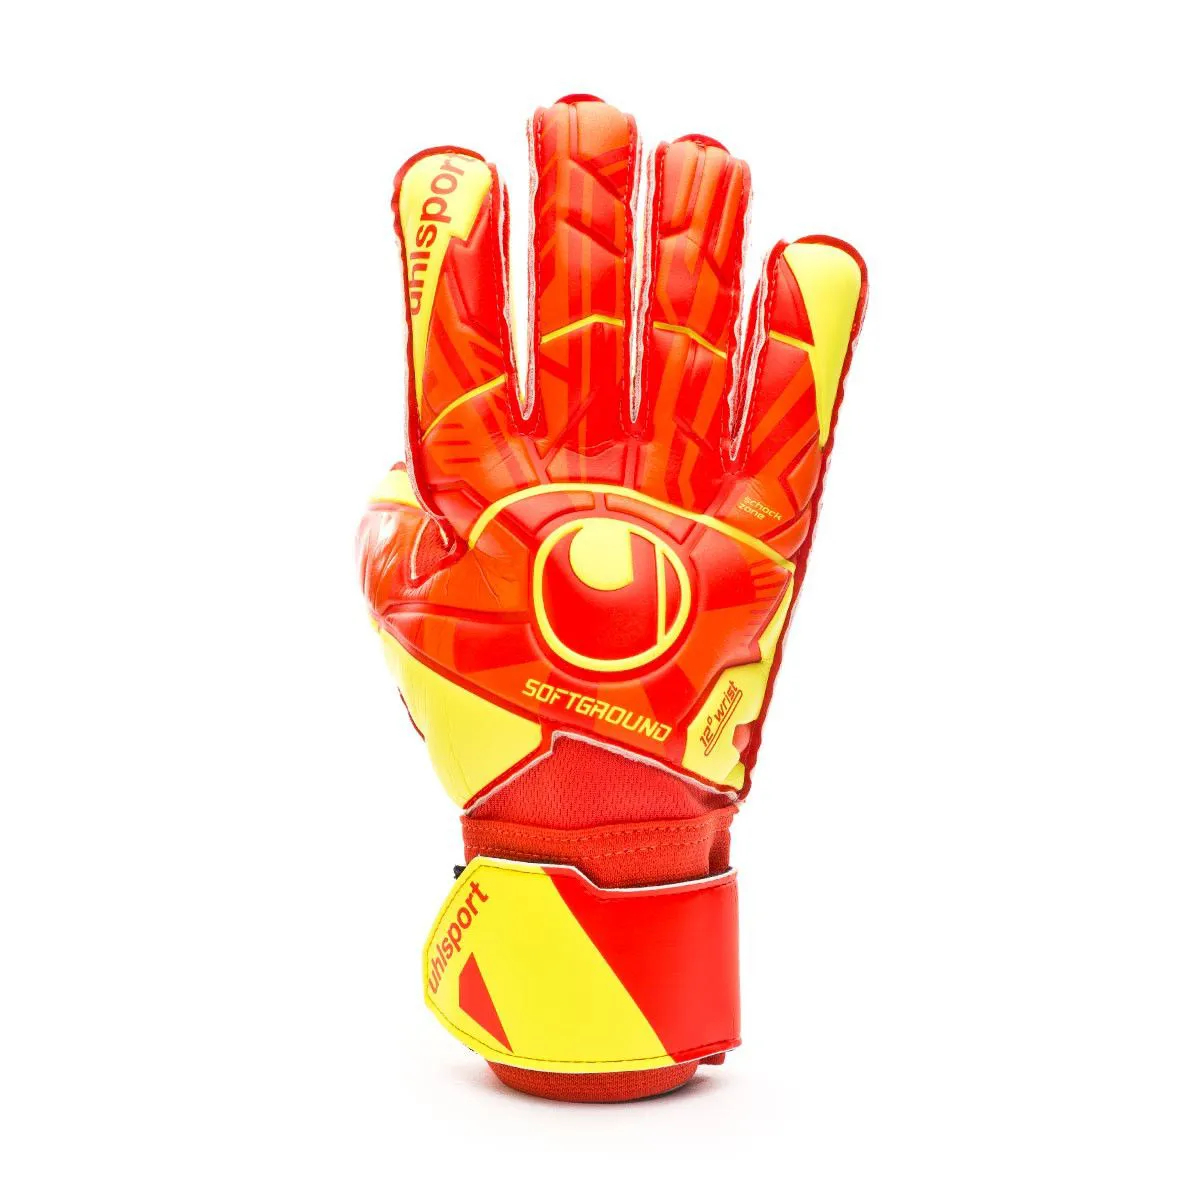 Luva Goleiro Uhlsport - Dynamic Impulse - Soft Pro